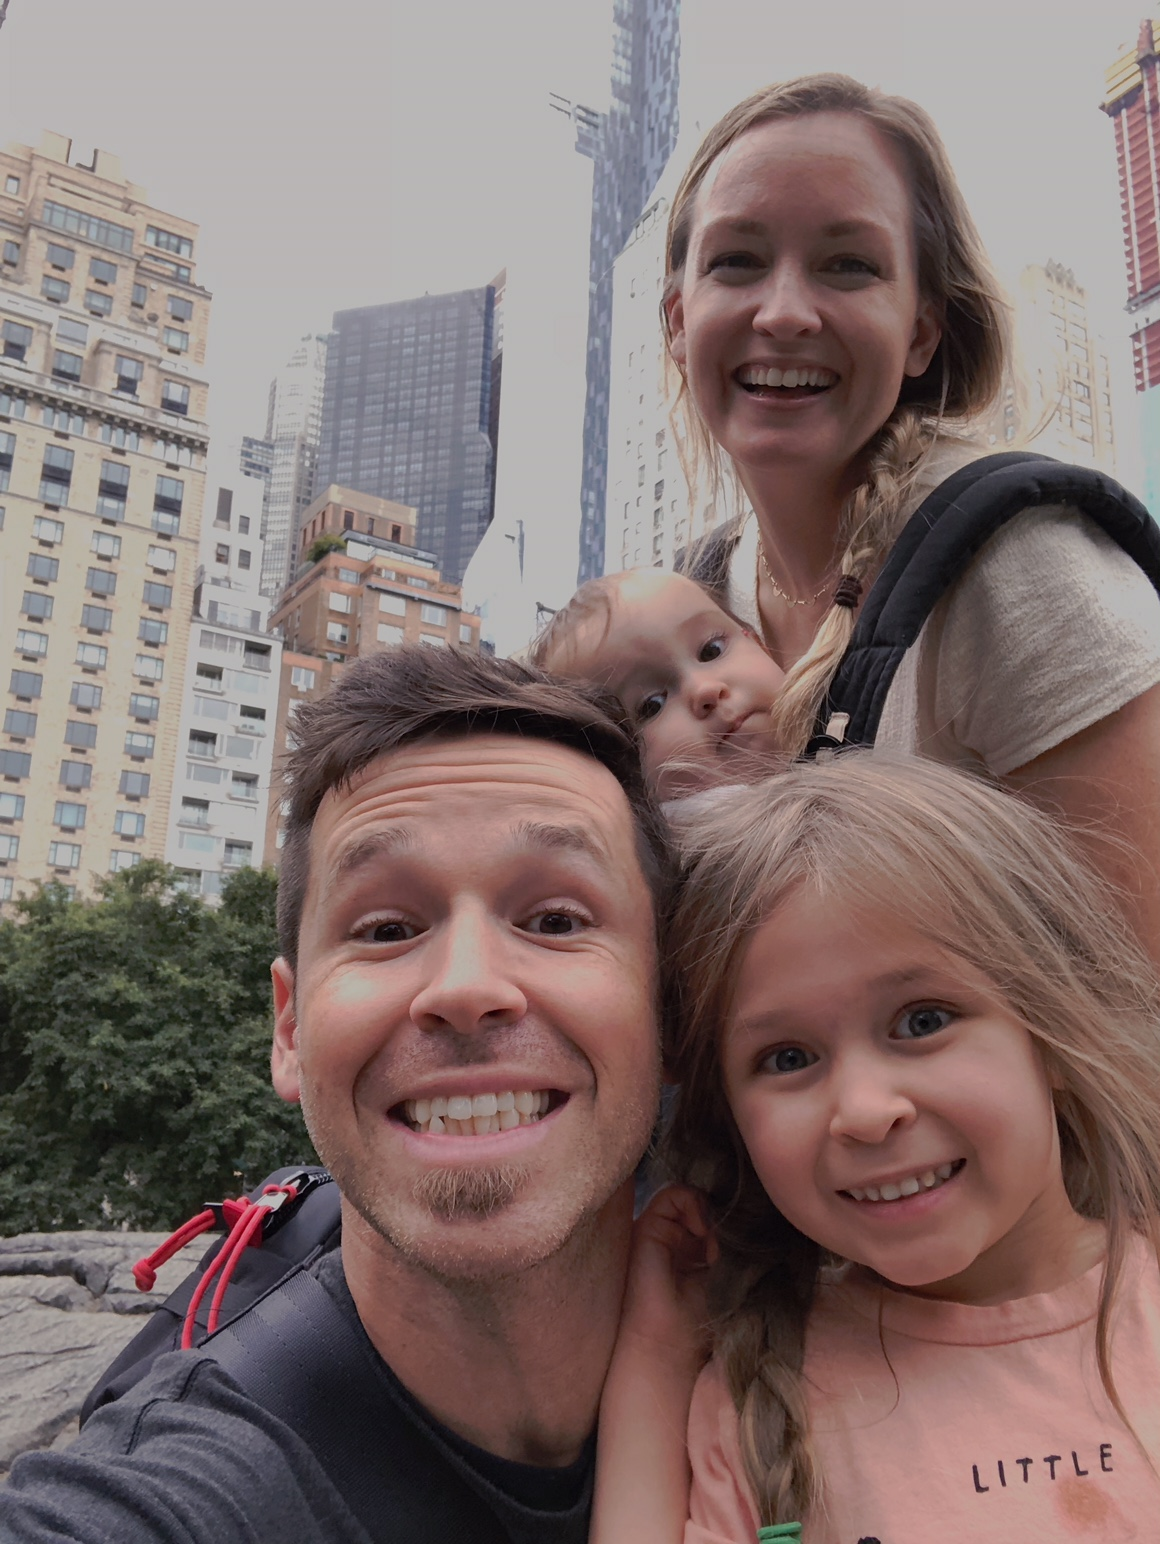 Family selfie with kids in new york city